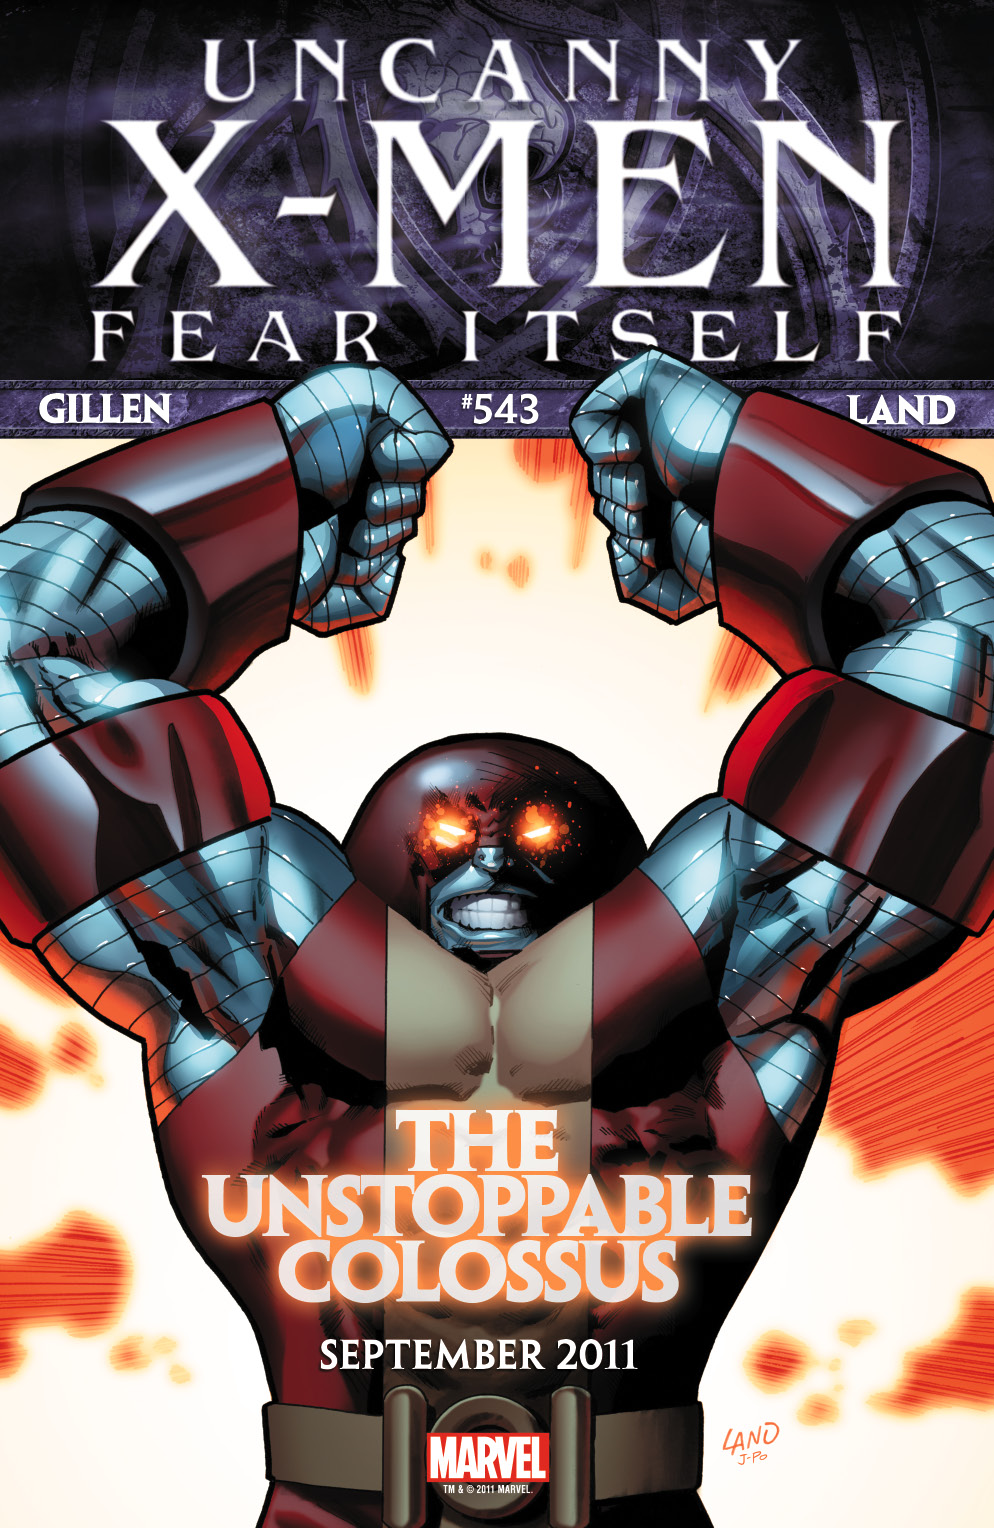 UNCANNY_XMEN_543_Teaser FEAR ITSELF unleashes The Unstoppable Colossus